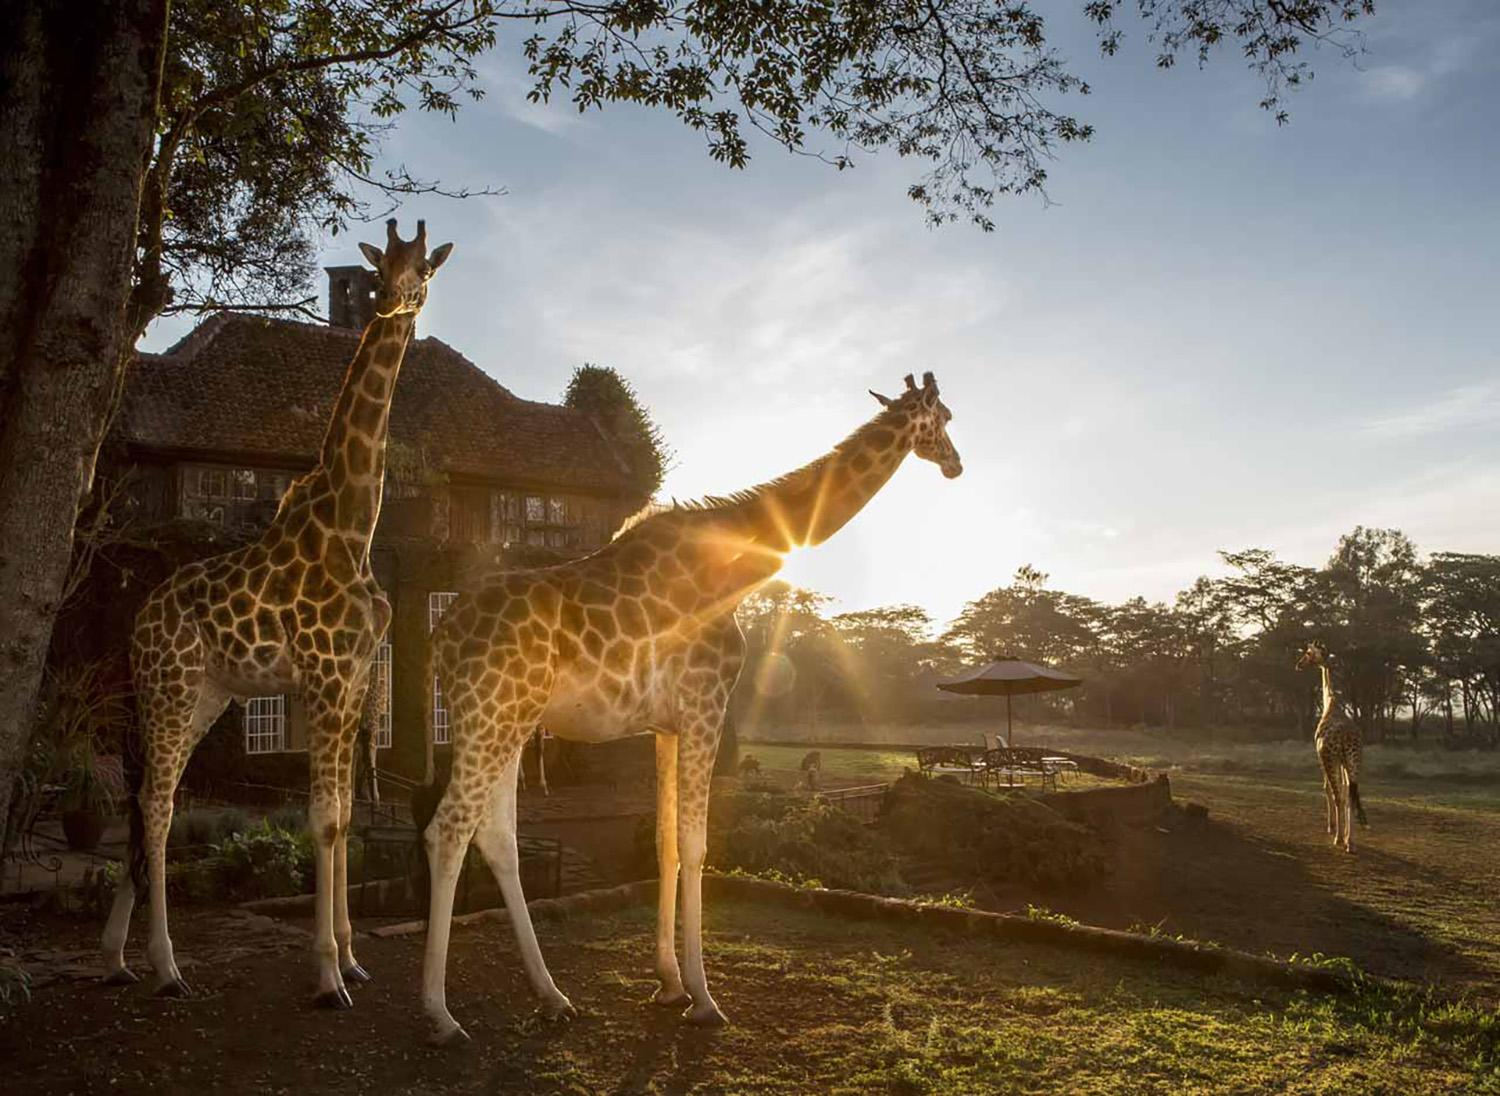 EXCLUSIVE EXOTIC HOTELS & RESORTS YOU MUST ADD TO YOUR BUCKLE LIST - The Safari Collection